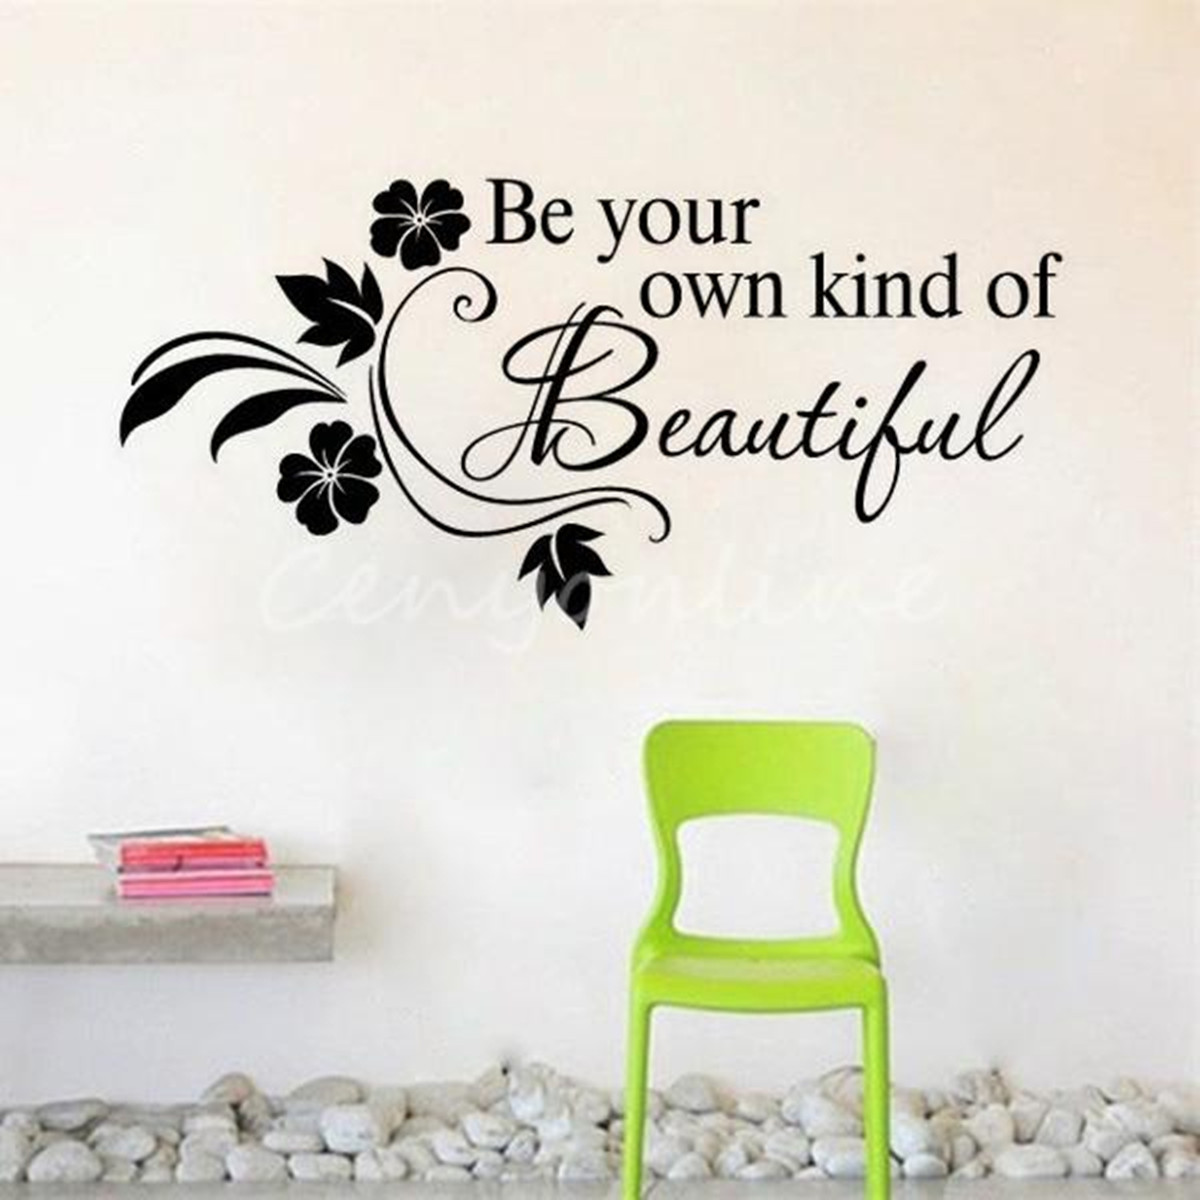 Family DIY Removable Wall Sticker Decal Art Vinyl Quotes